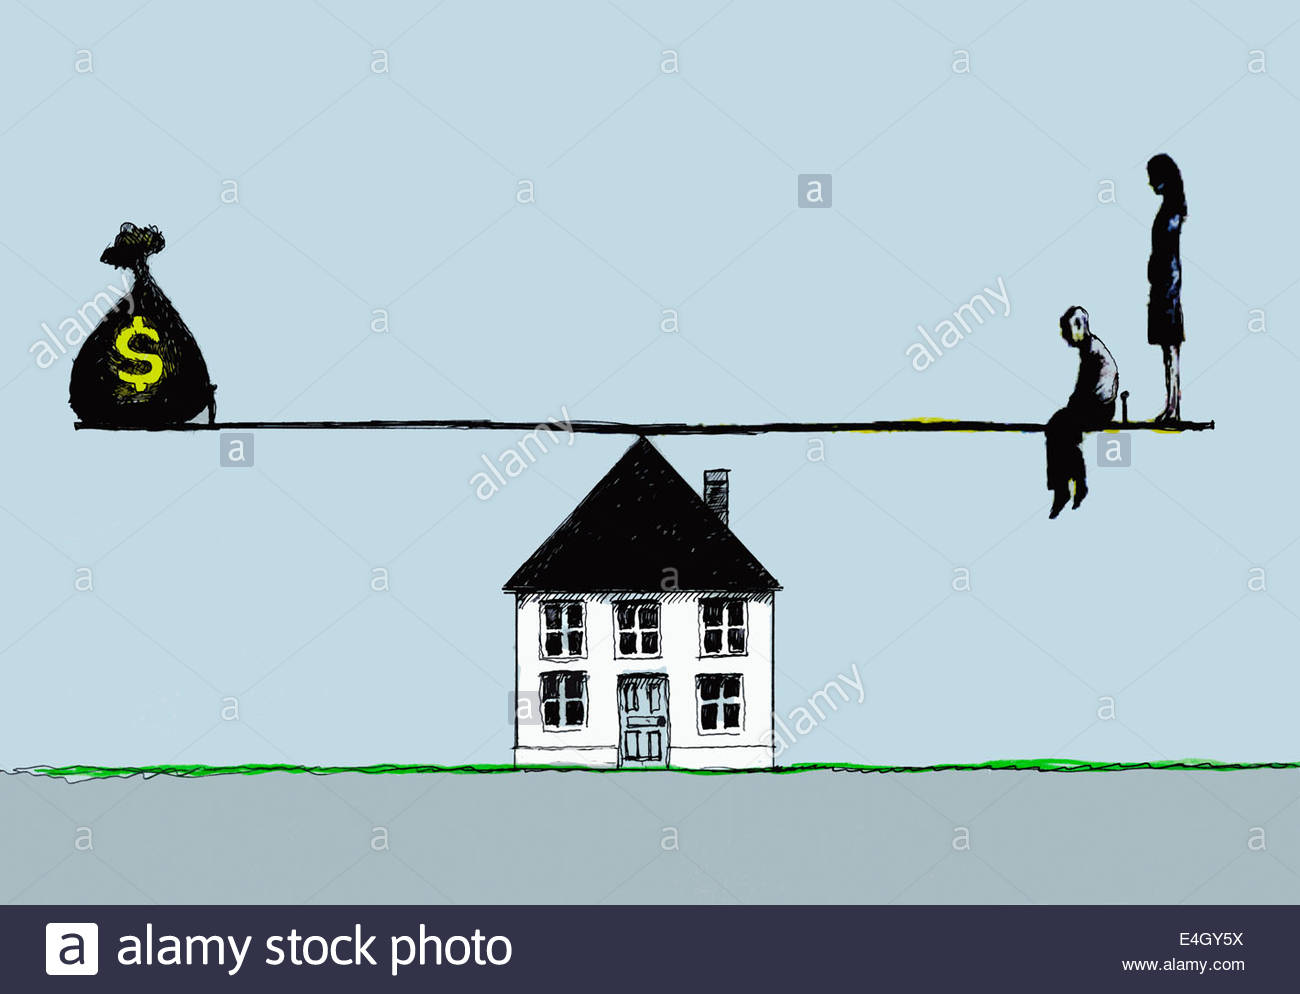 Unhappy couple opposite dollar money bag on seesaw balancing on house - Stock Image